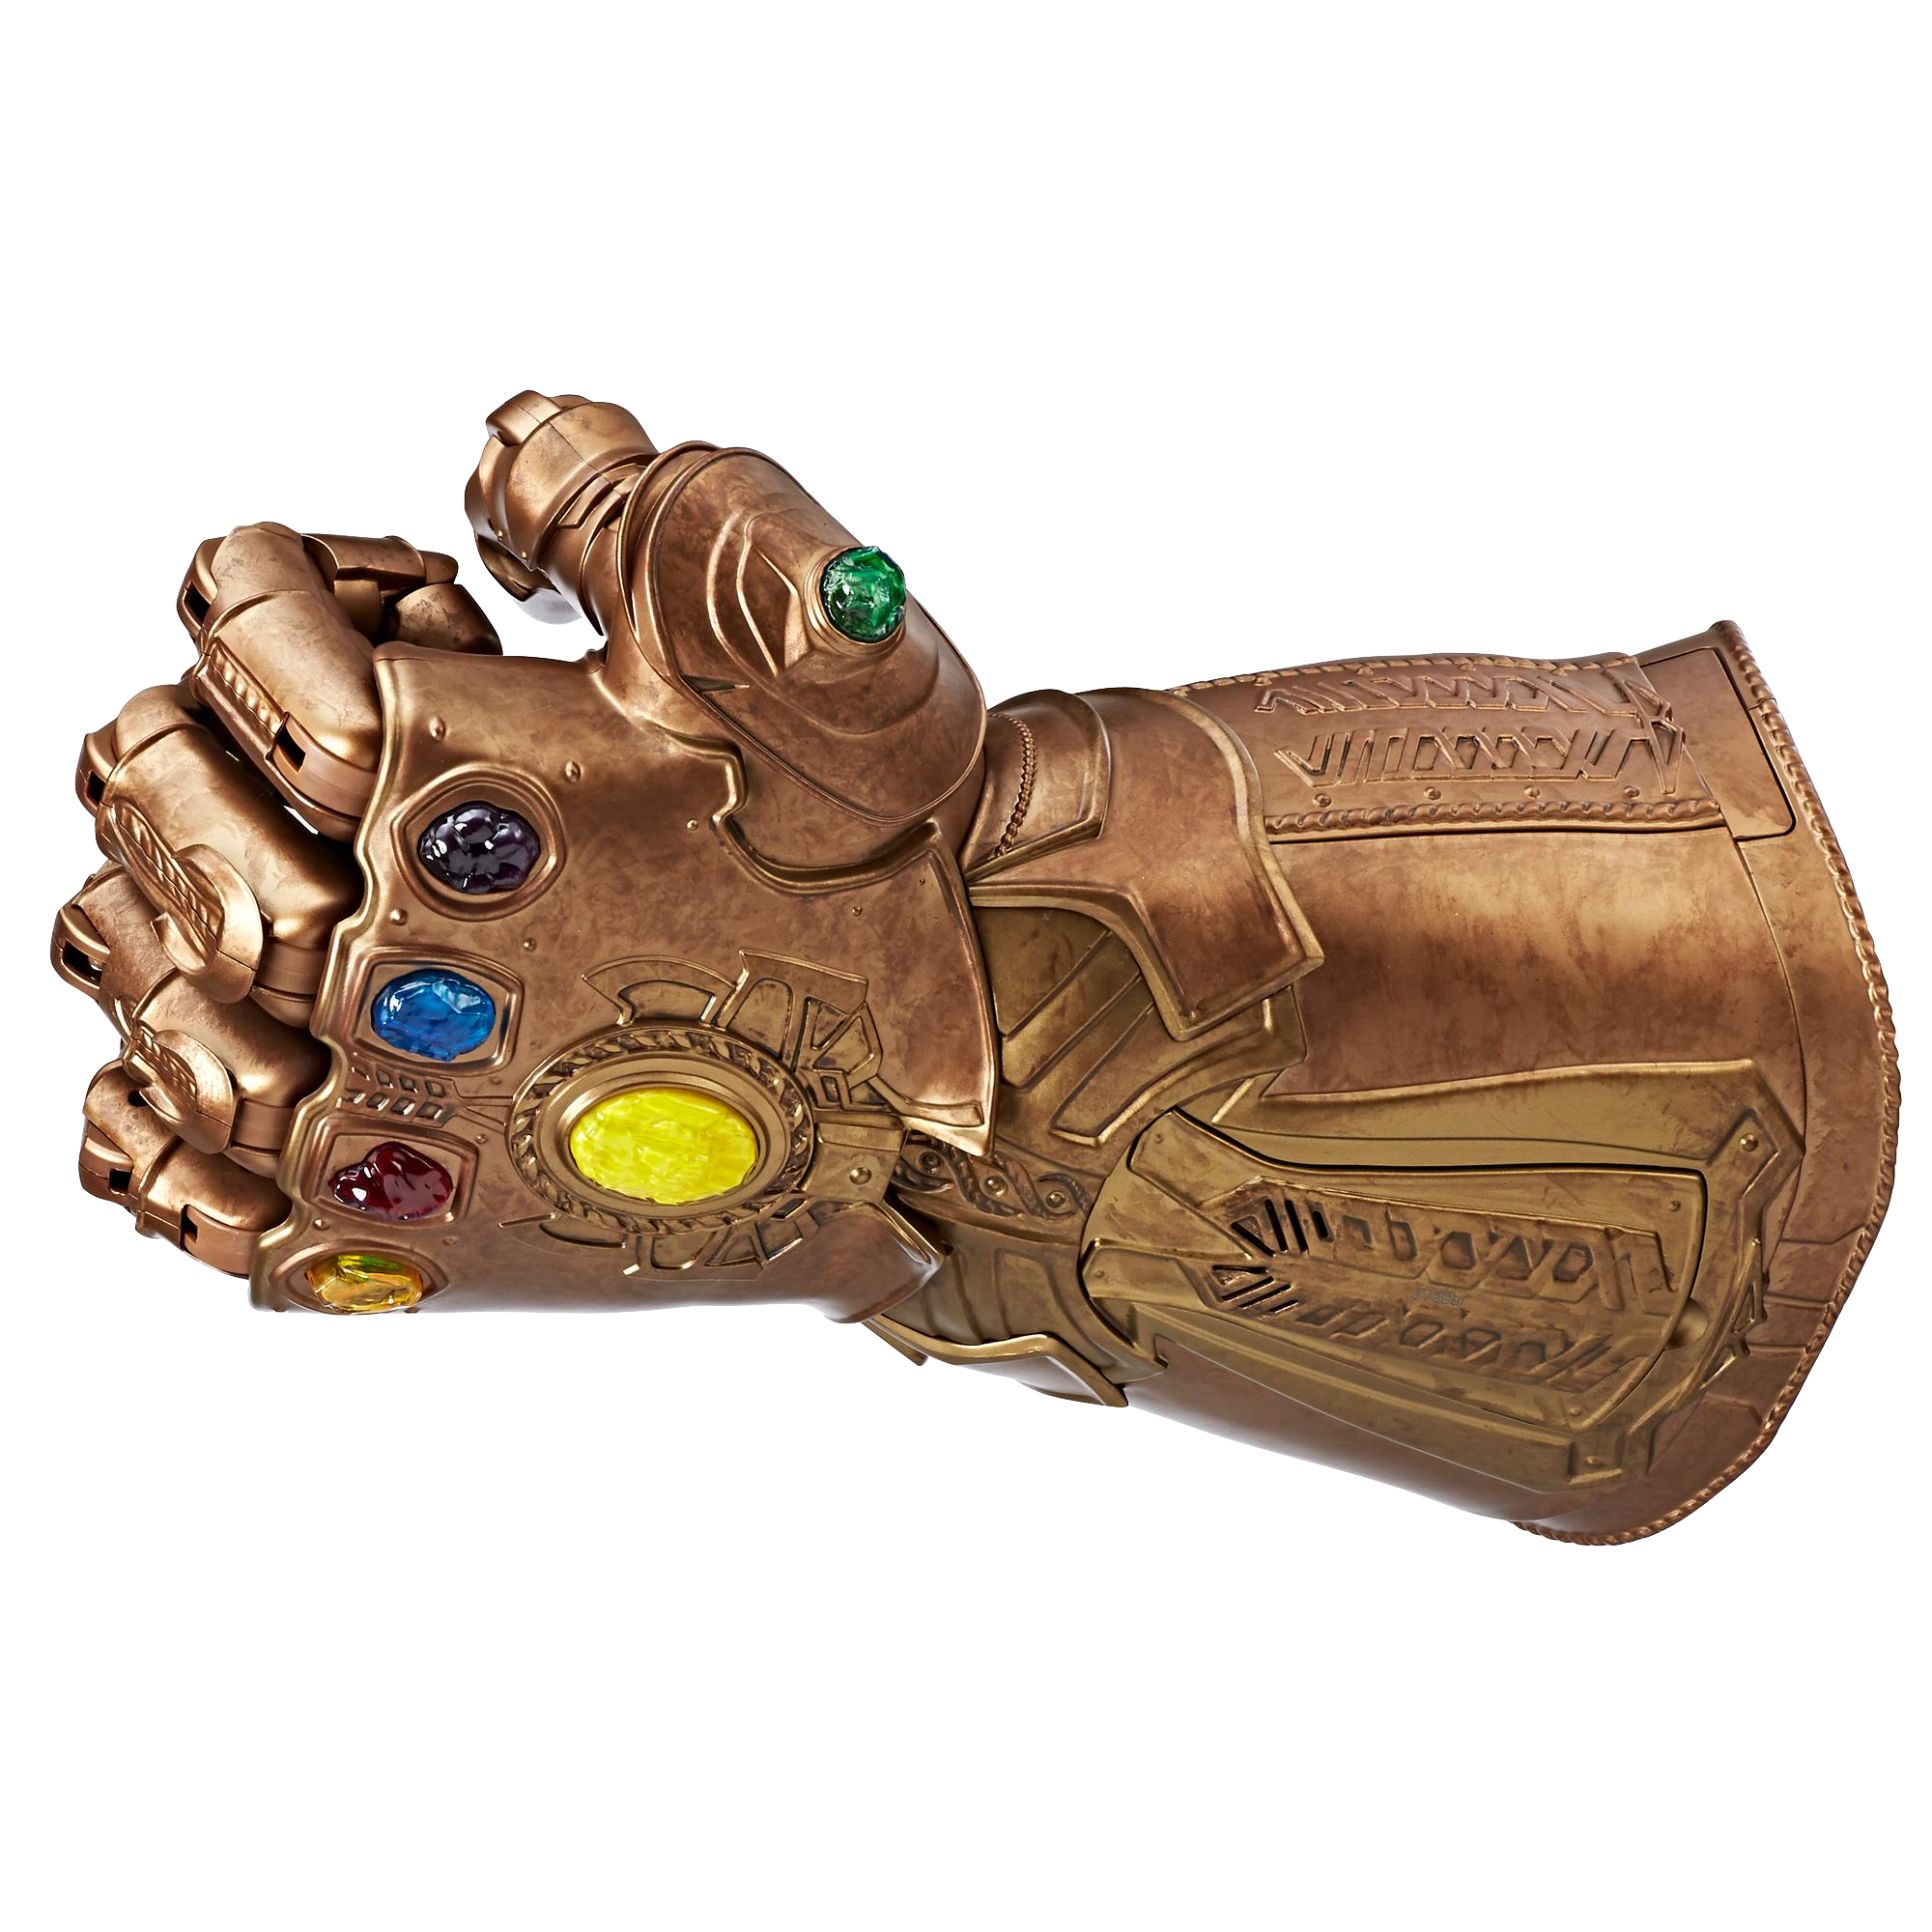 hasbro-marvel-legends-infinity-gauntlet-articulated-electronic-fist-toyslife